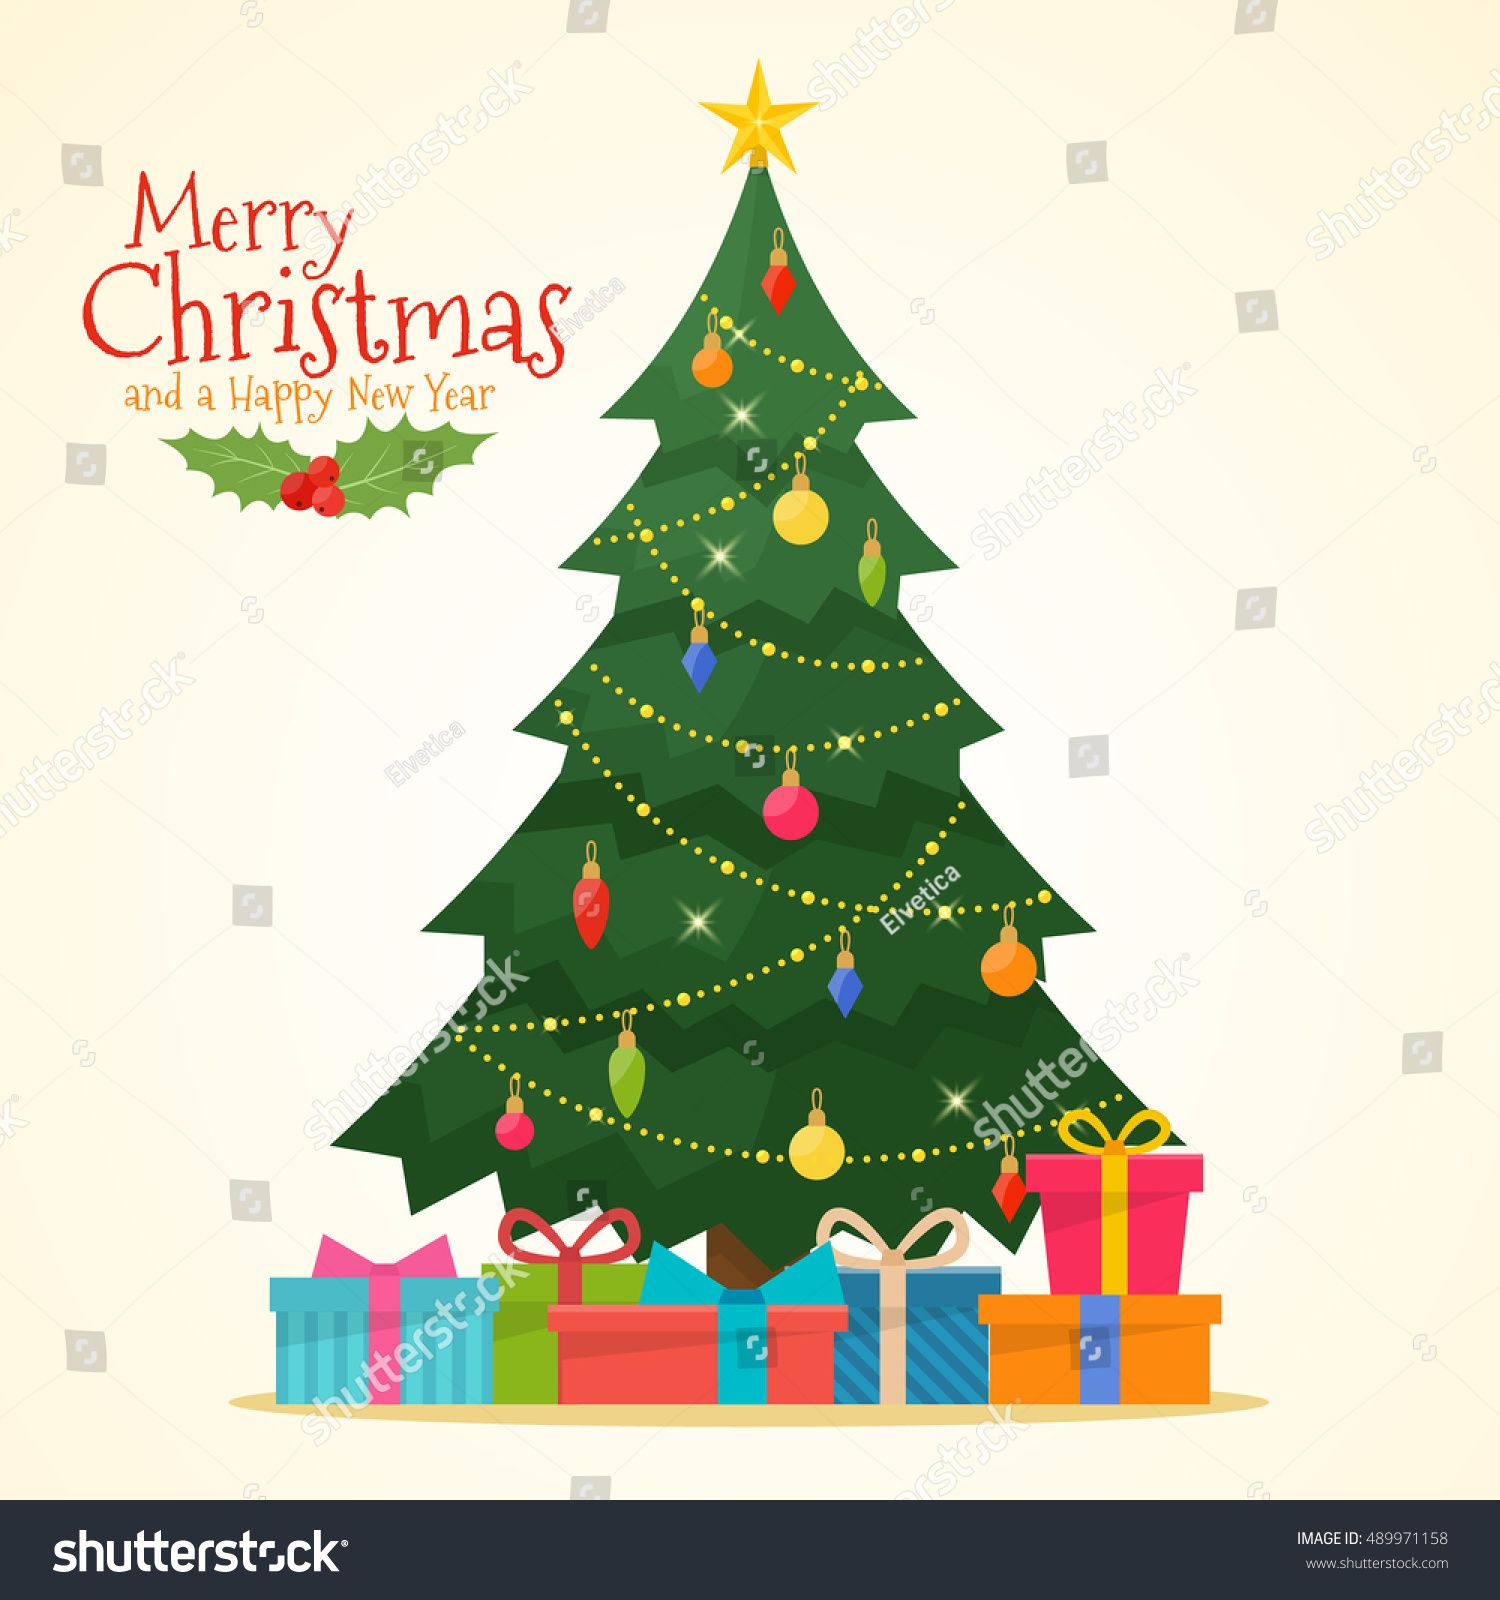 Decorated Christmas Tree With Gift Boxes Star Lights Decoration Balls And Lamps Christmas Tree With Gifts Merry Christmas Photos Christmas Tree Decorations